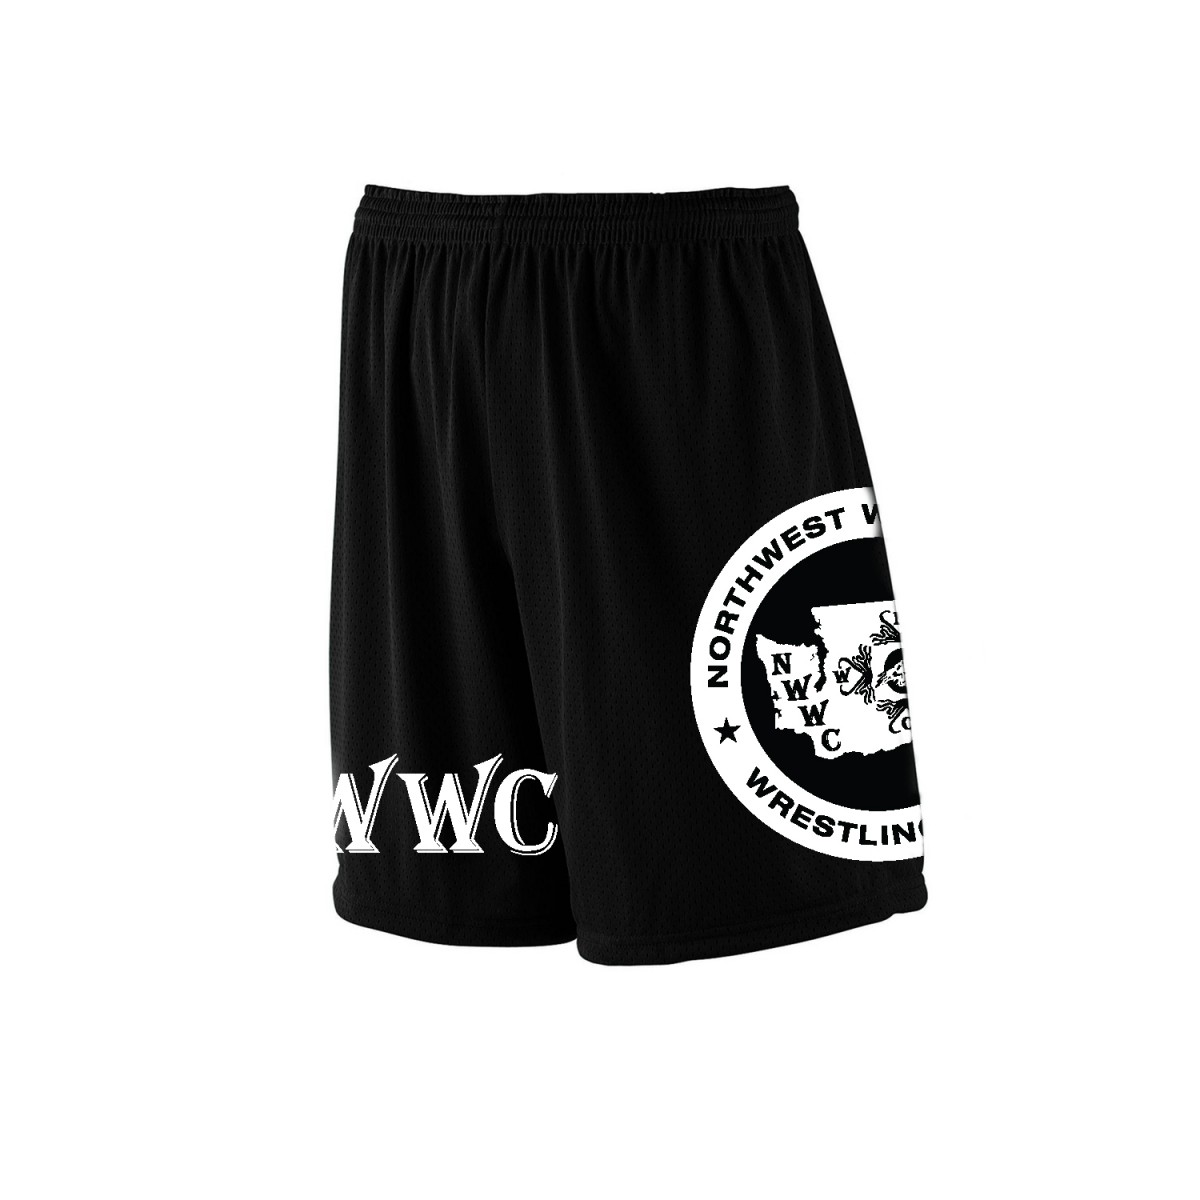 NWWC Black Shorts White Logo-Black-M